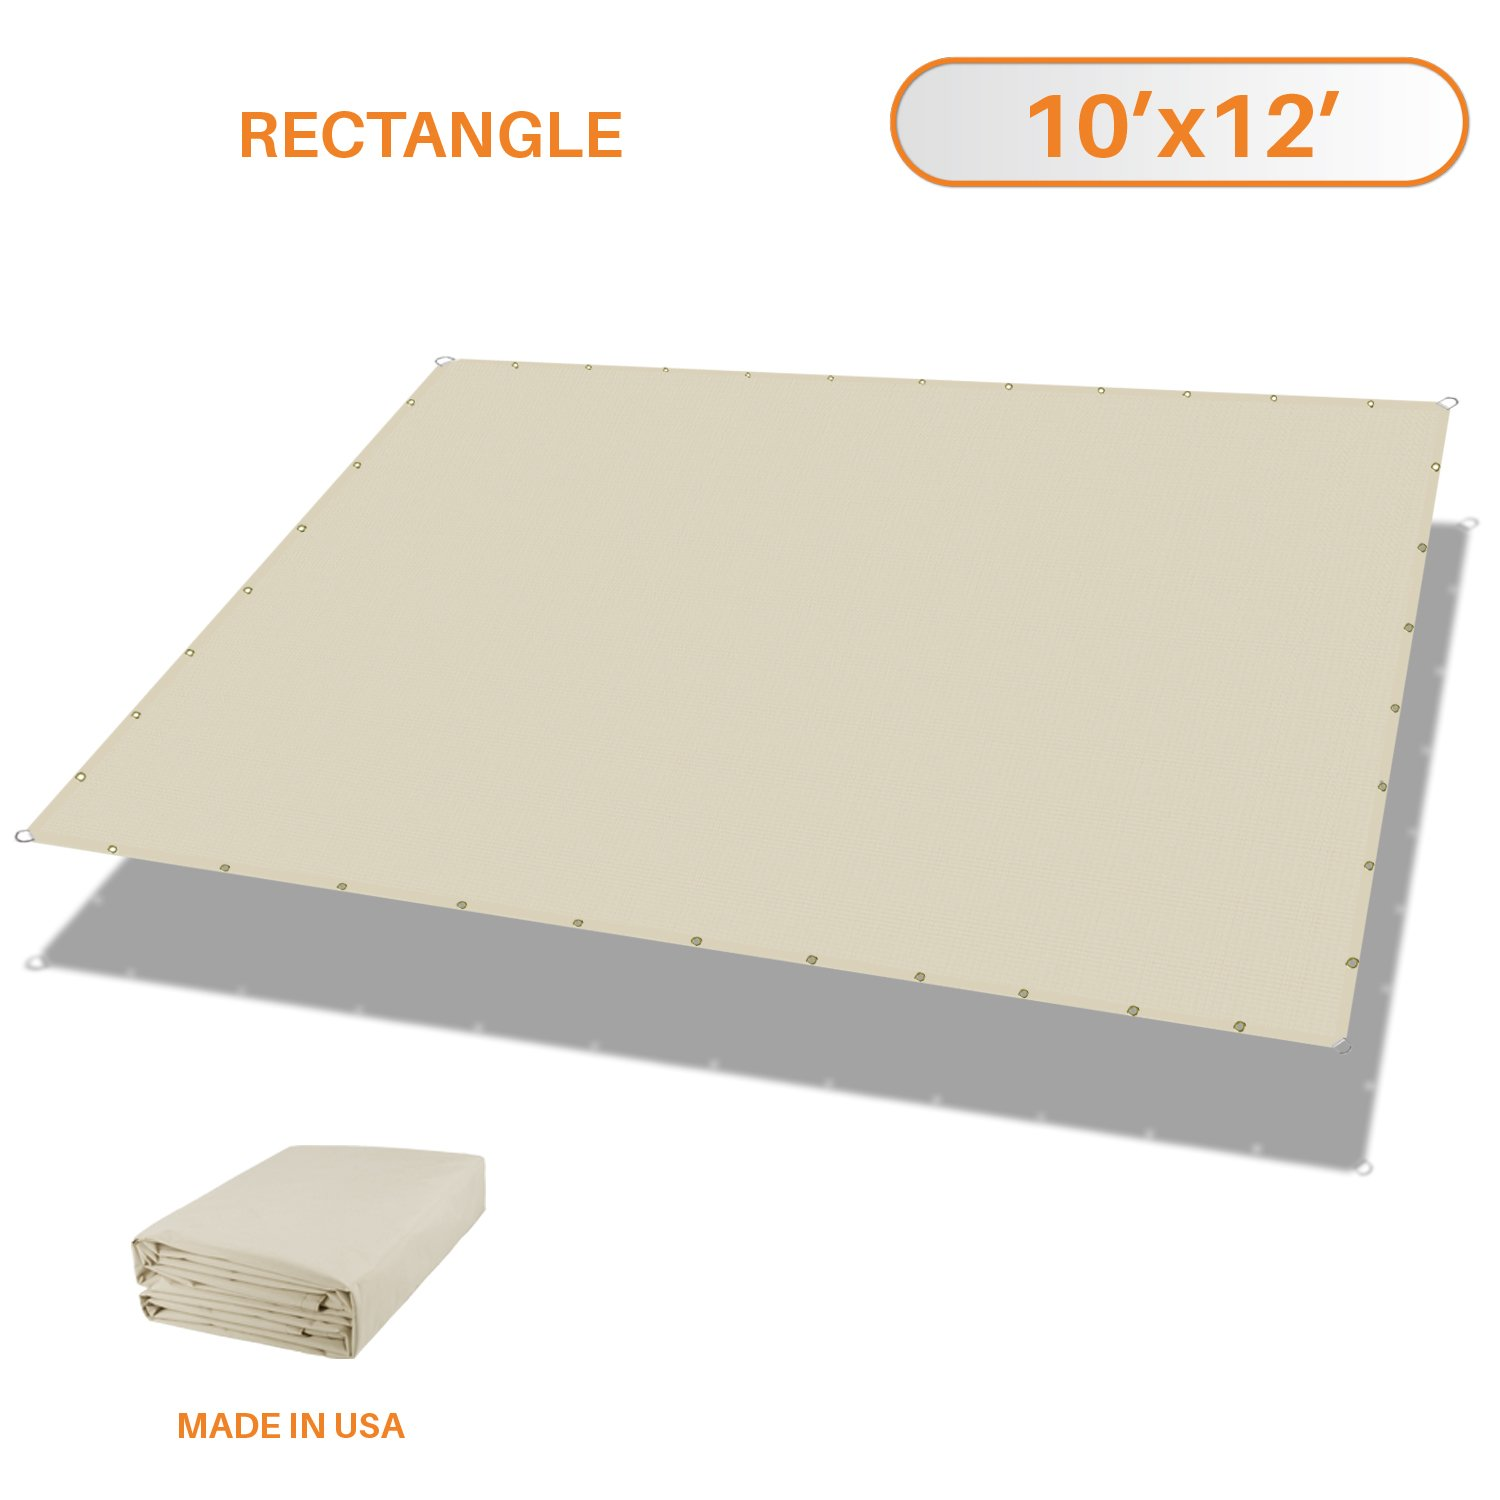 Sunshades Depot Tang 10'x12' Waterproof Rectangle Sun Shade Sail 220 GSM Beige Straight Edge Canopy with Grommet UV Block Shade Fabric Pergola Cover Awning Customize Available